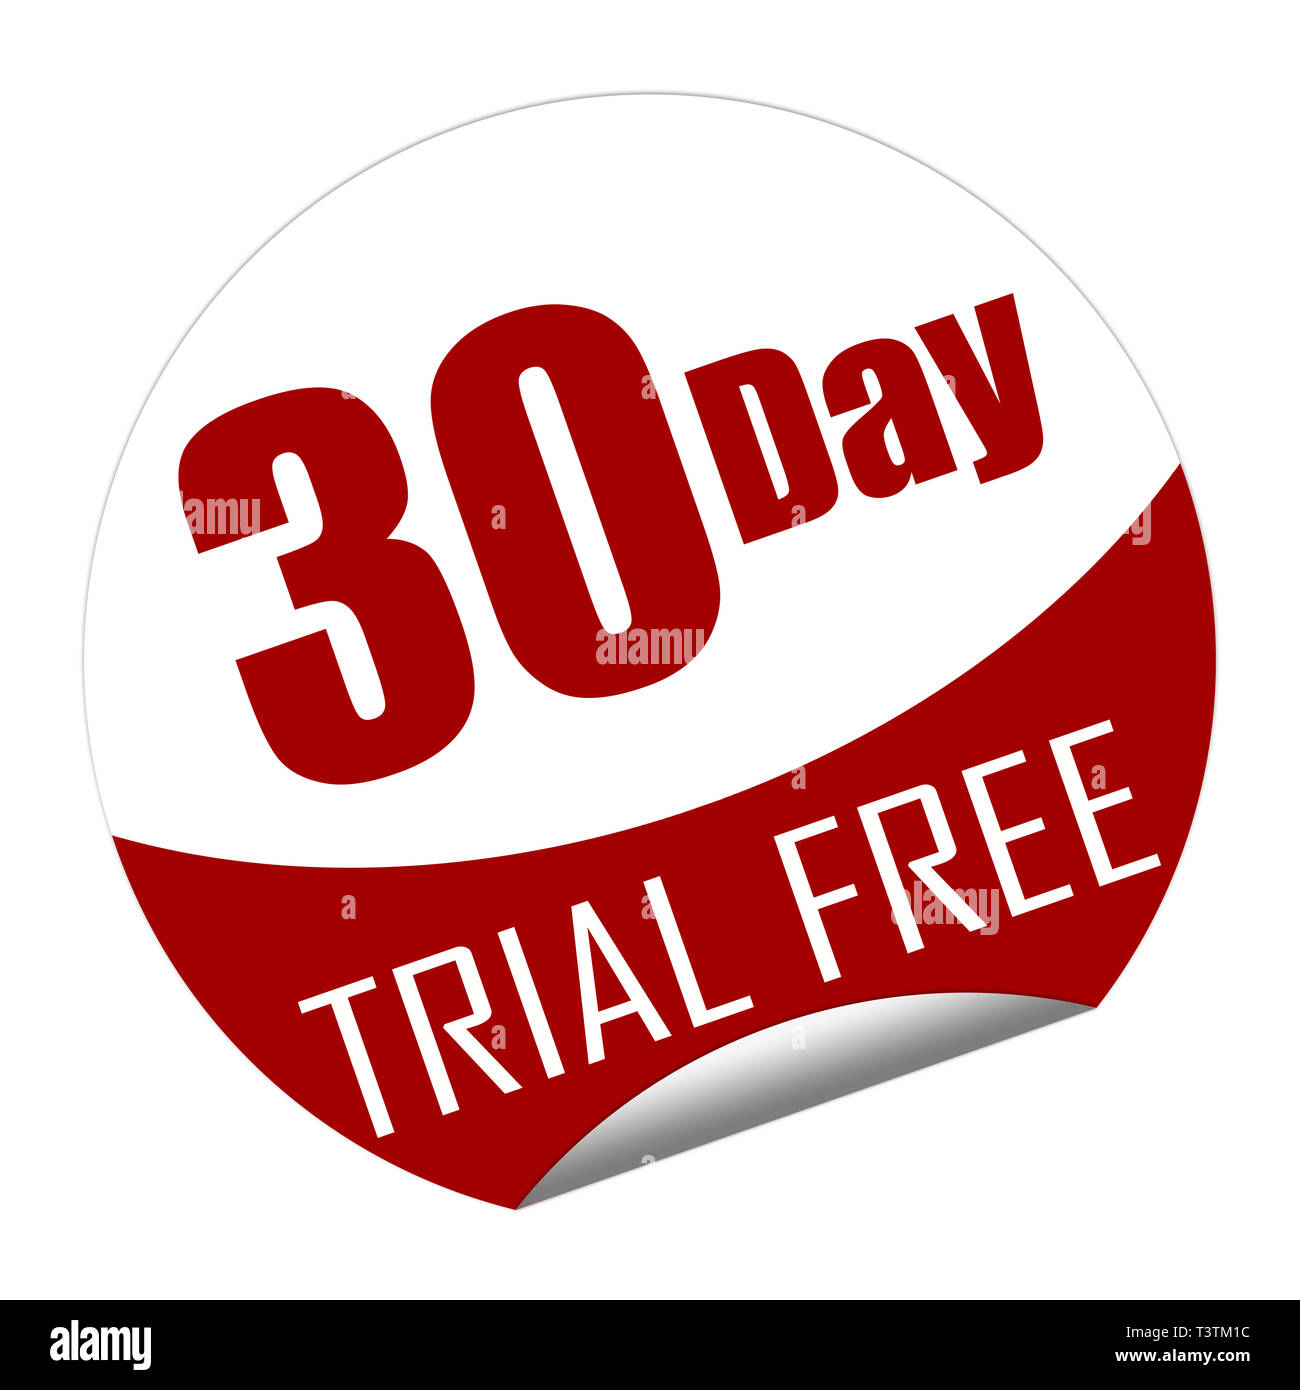 Sticker with the text 30 day trial free isolated on white Stock